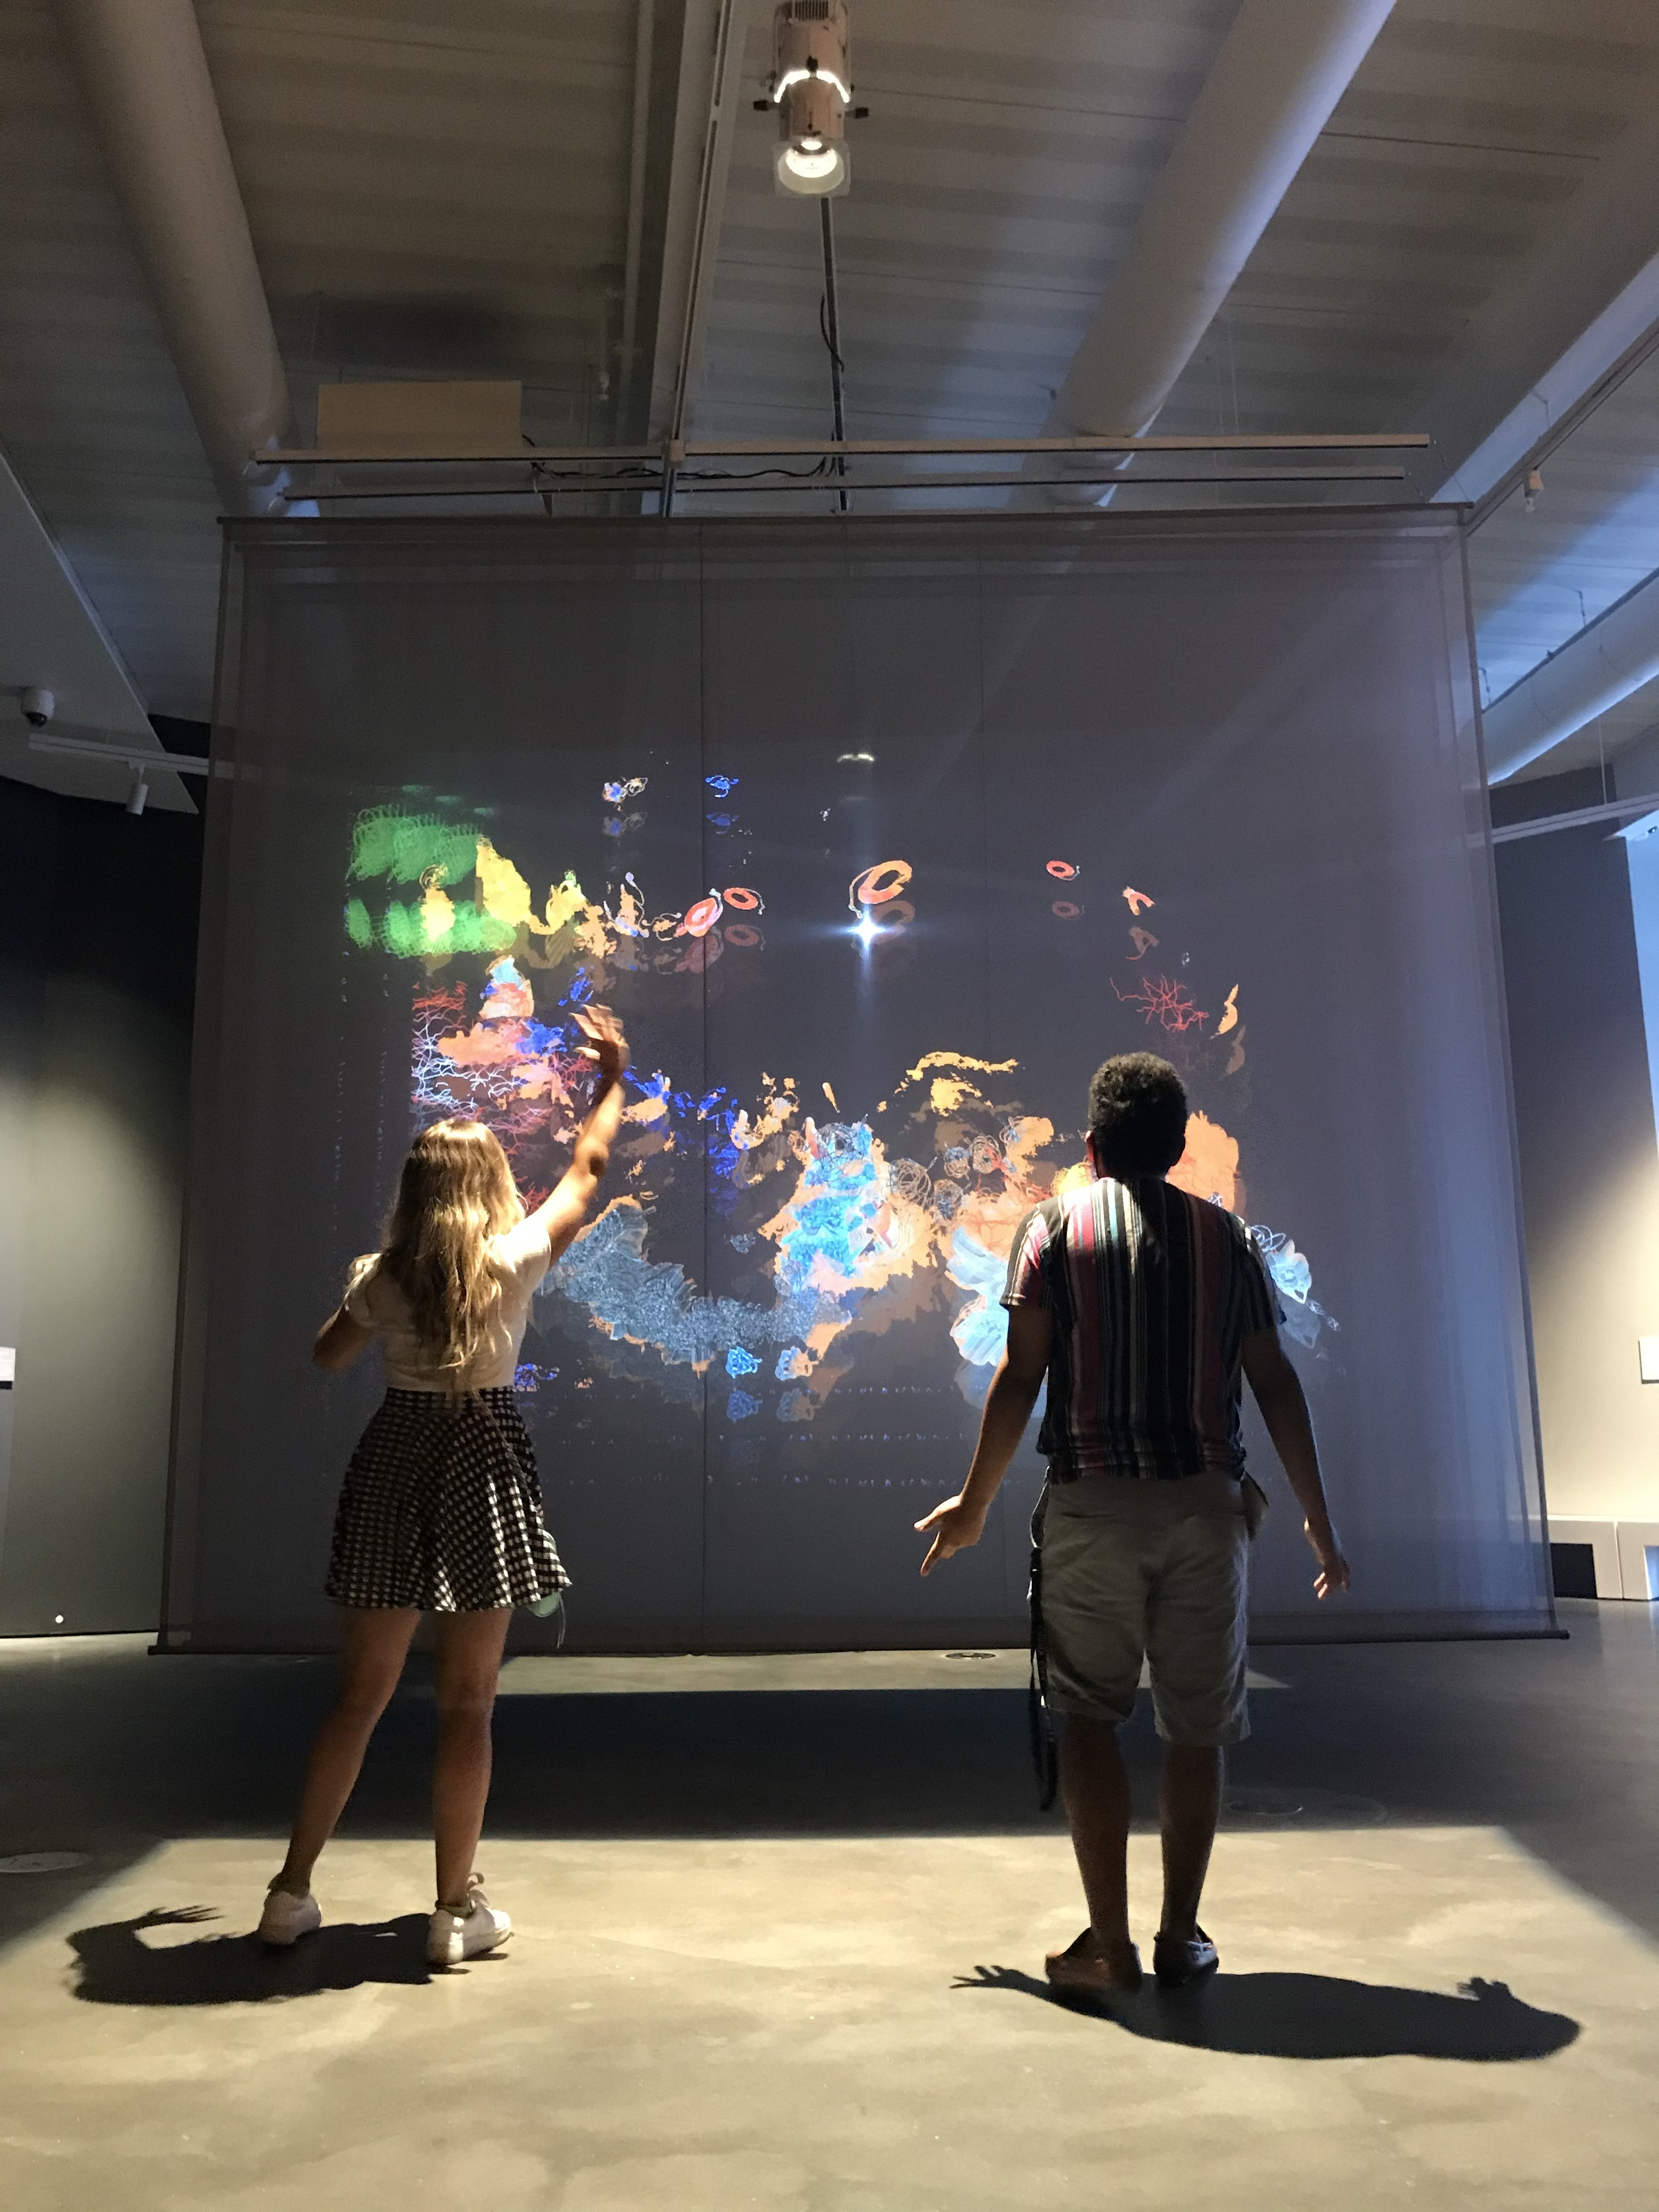 Two figures interact with a large screen displaying projected abstract art elements